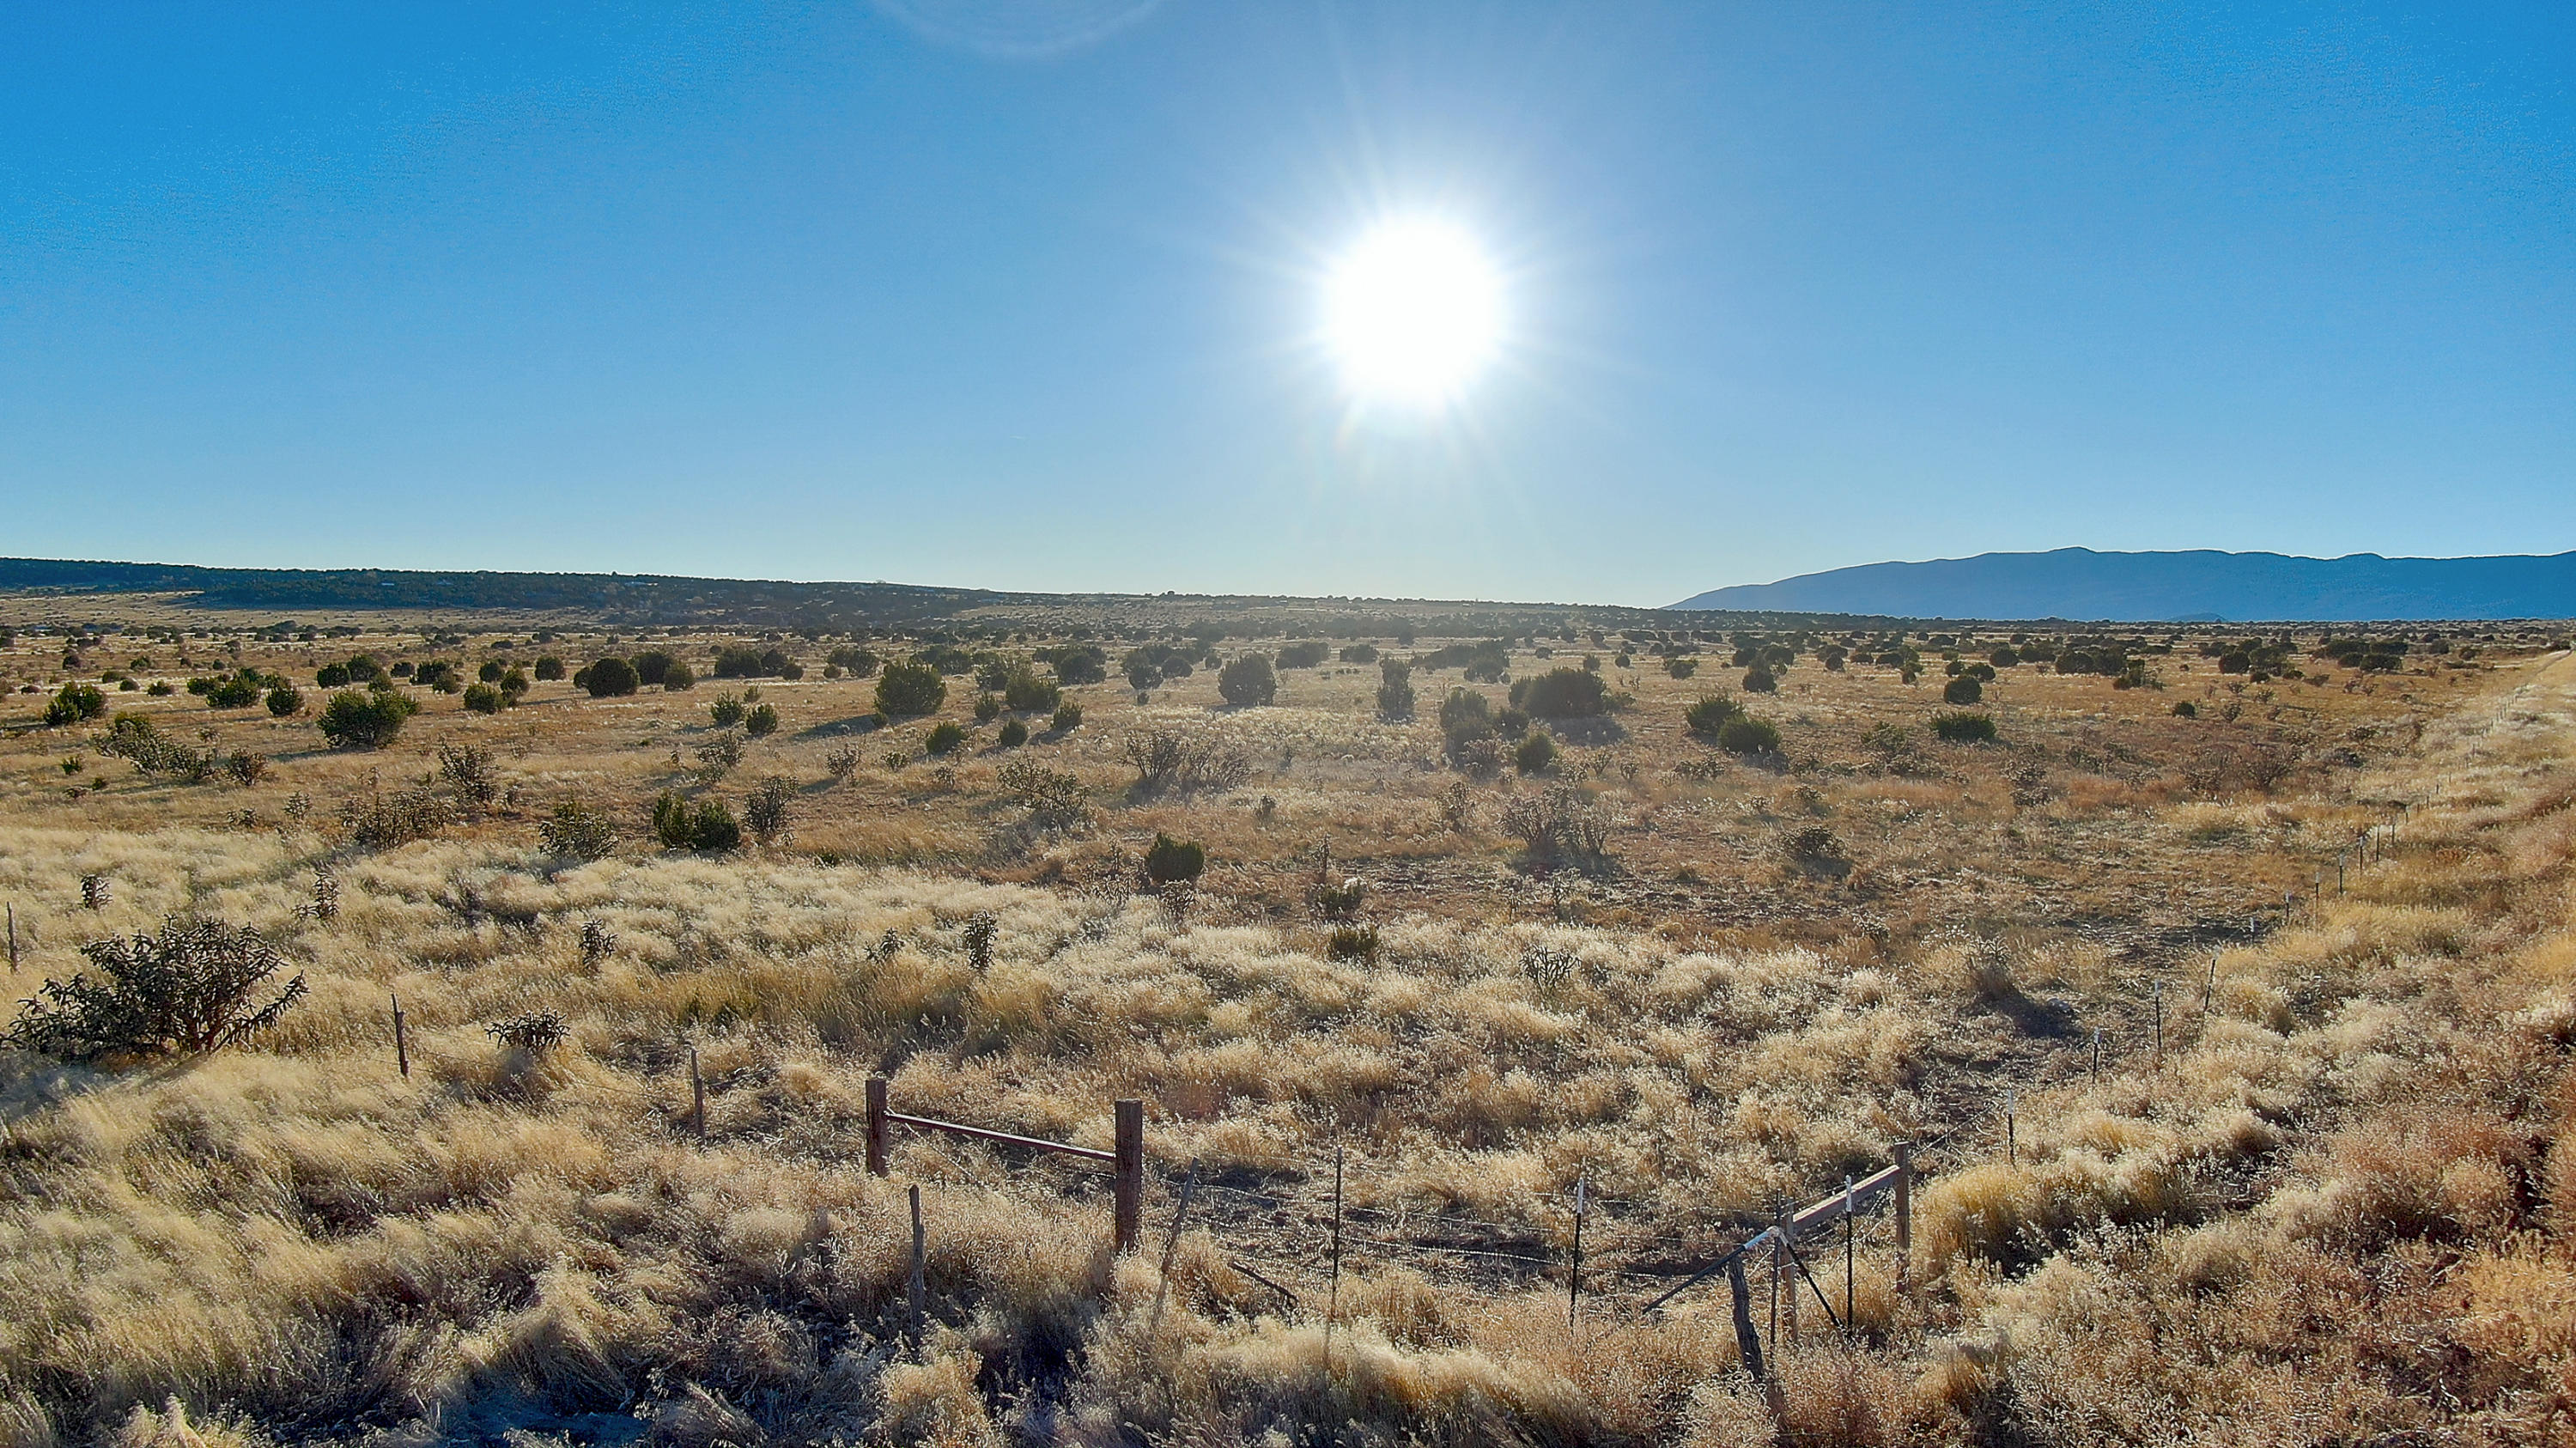 WEATHERSBY Drive, Edgewood, NM 87015 - Edgewood, NM real estate listing